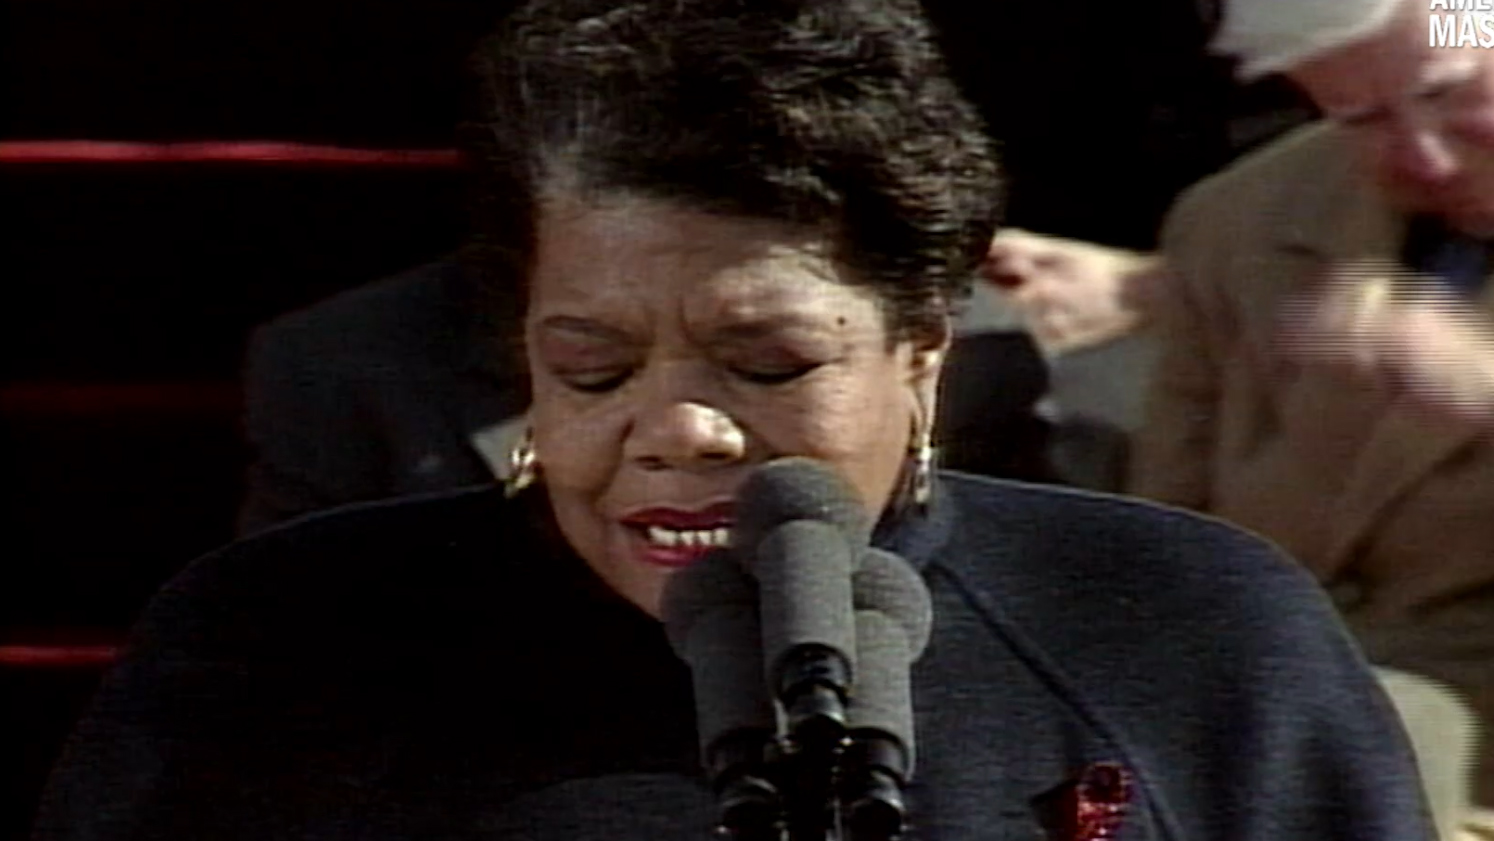 a angelou and still i rise about the film american masters learn why bill clinton invited a angelou to speak at his inauguration